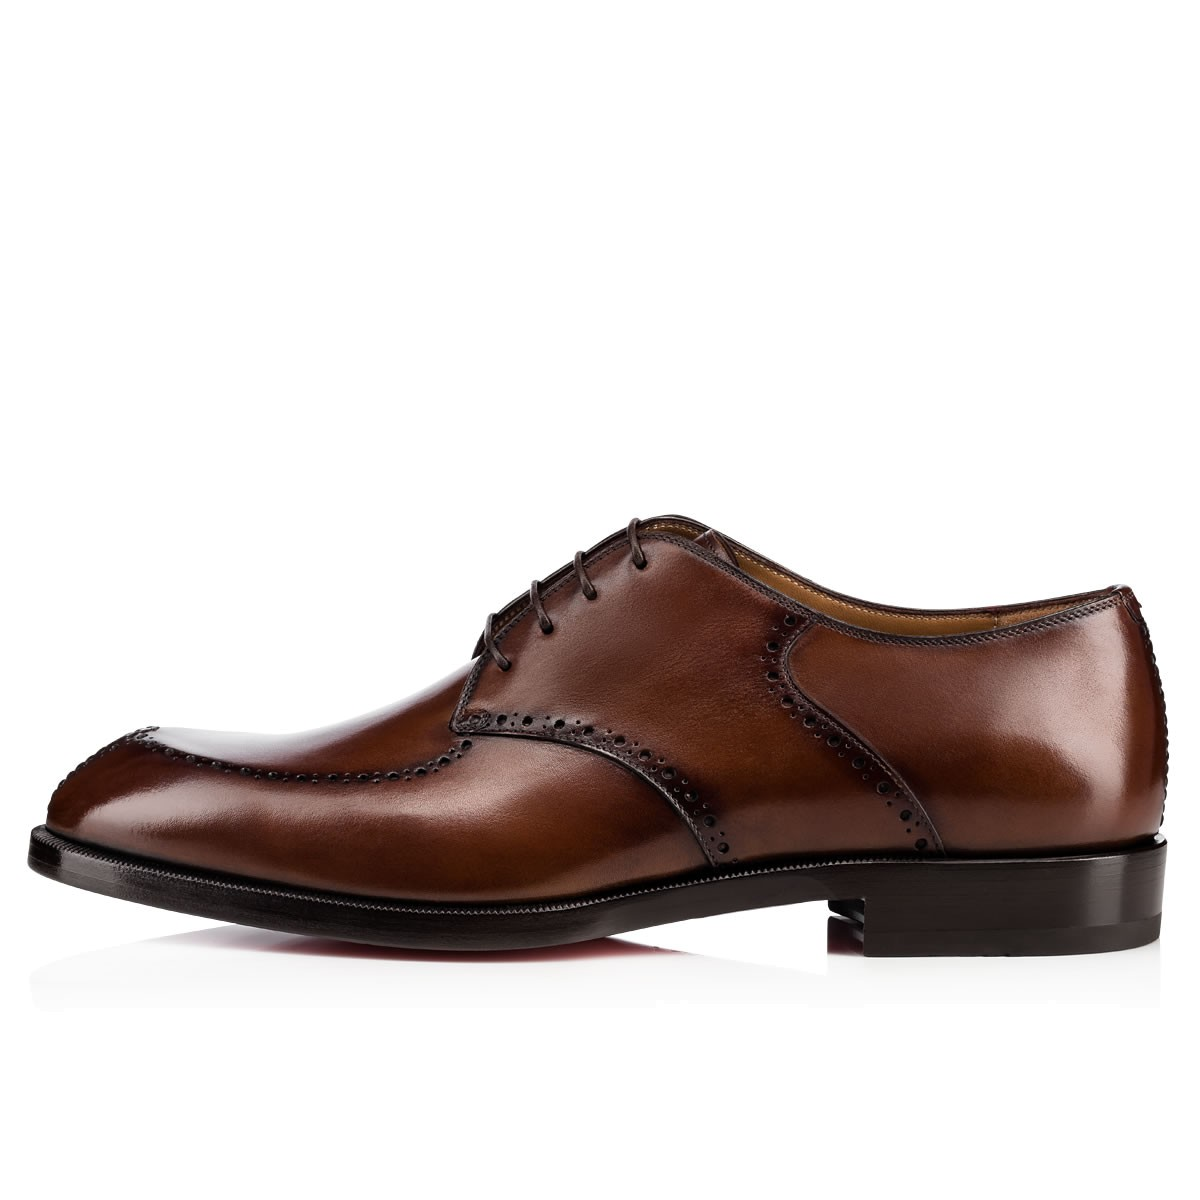 Shoes - A Mon Homme Flat - Christian Louboutin